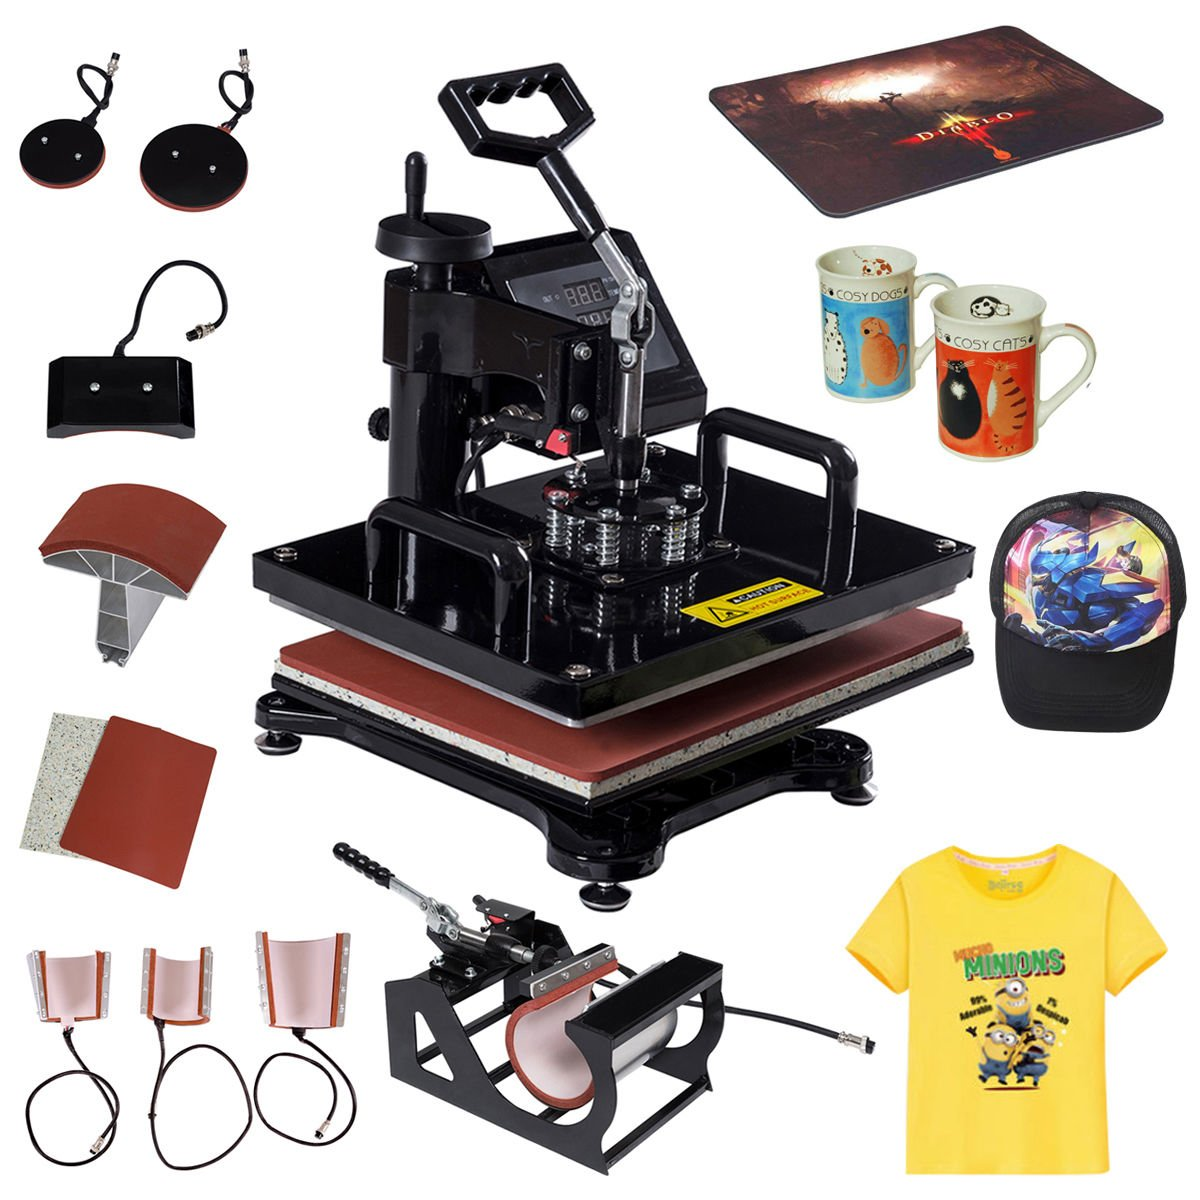 Tangkula 8 in 1 Heat Press Machine Digital Transfer Sublimation T-Shirt Mug Hat Plate Cap by Tangkula